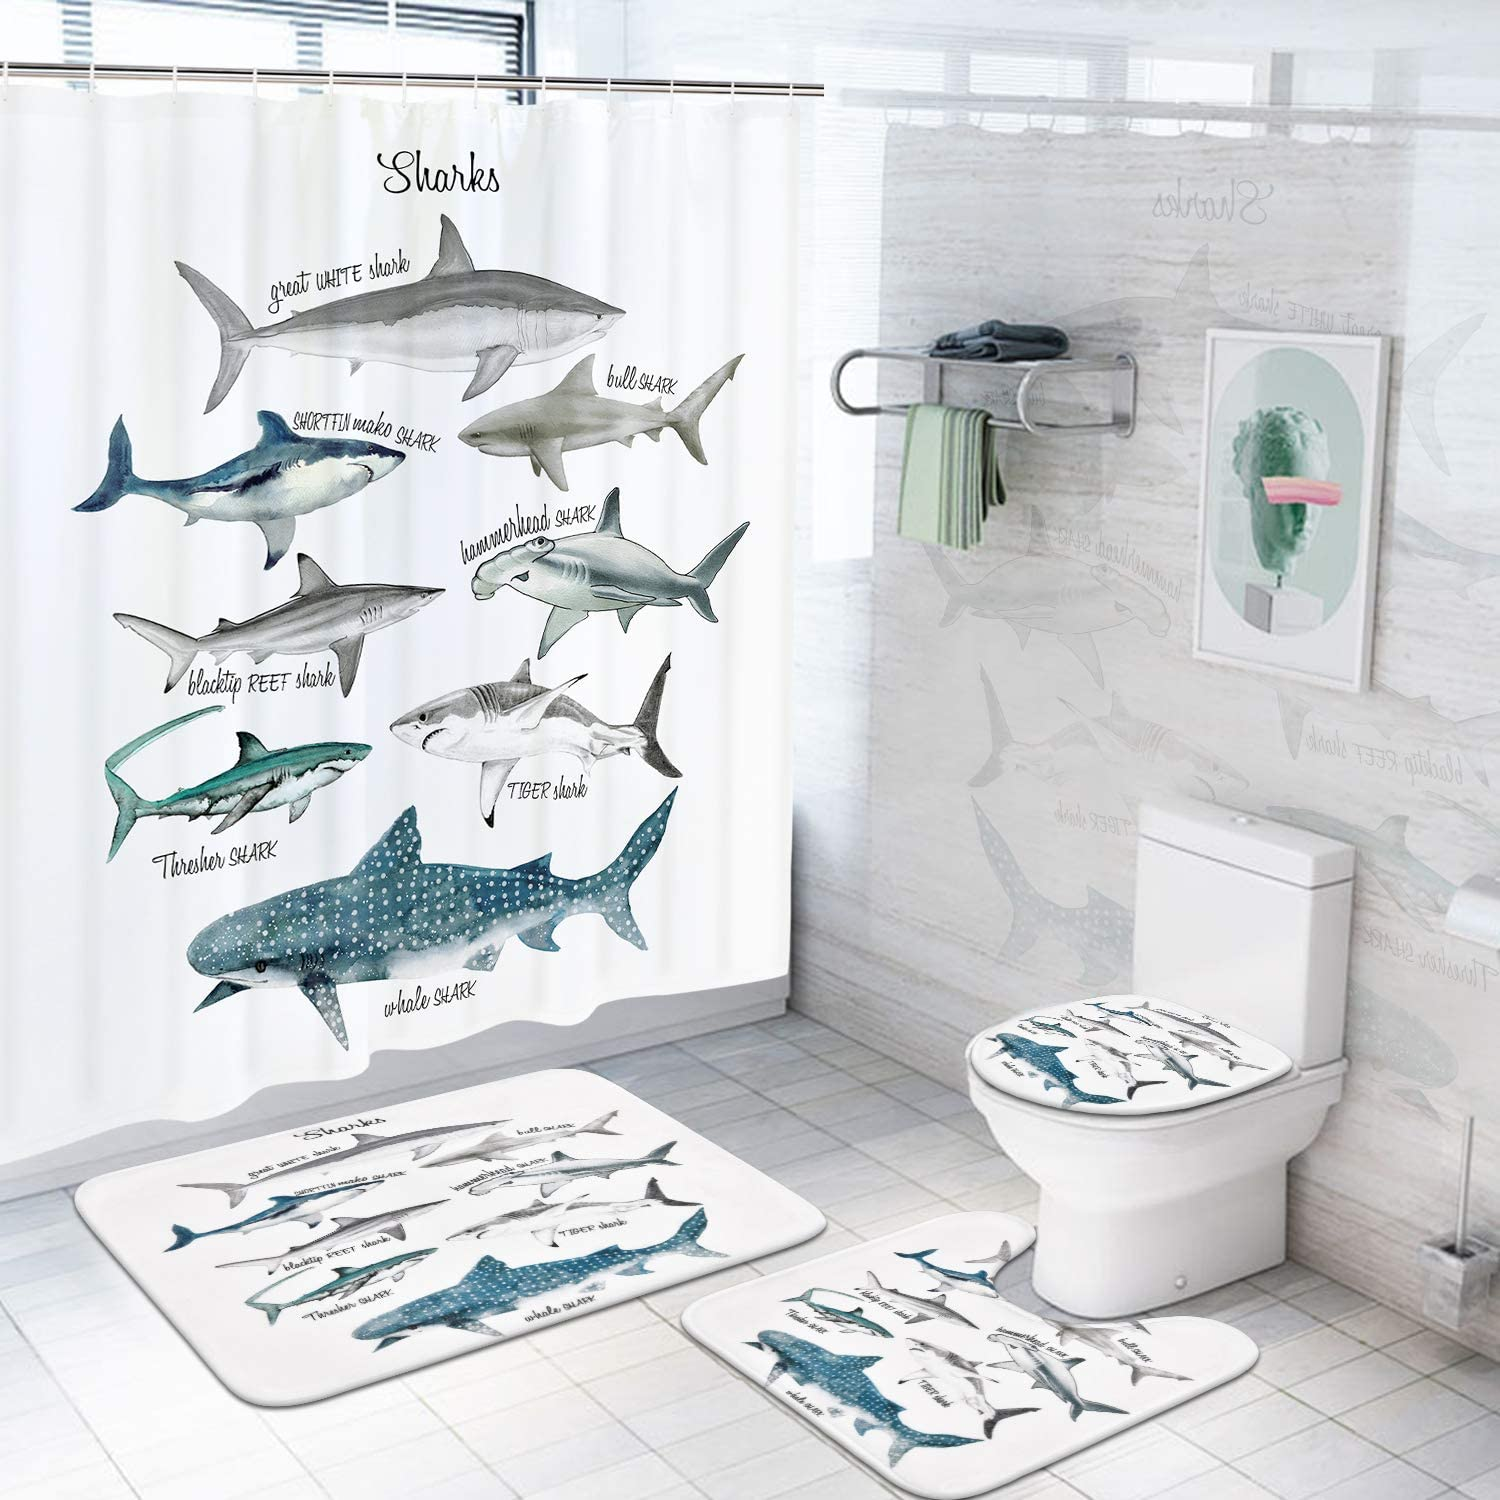 4 Pcs Shark Shower Curtain Sets with Non-Slip Rugs, Toilet Lid Cover and Bath Mat, Fish Sea Life Shower Curtains with 12 Hooks, Durable Waterproof Fabric Marine Themed Bath Curtain Set with Rugs